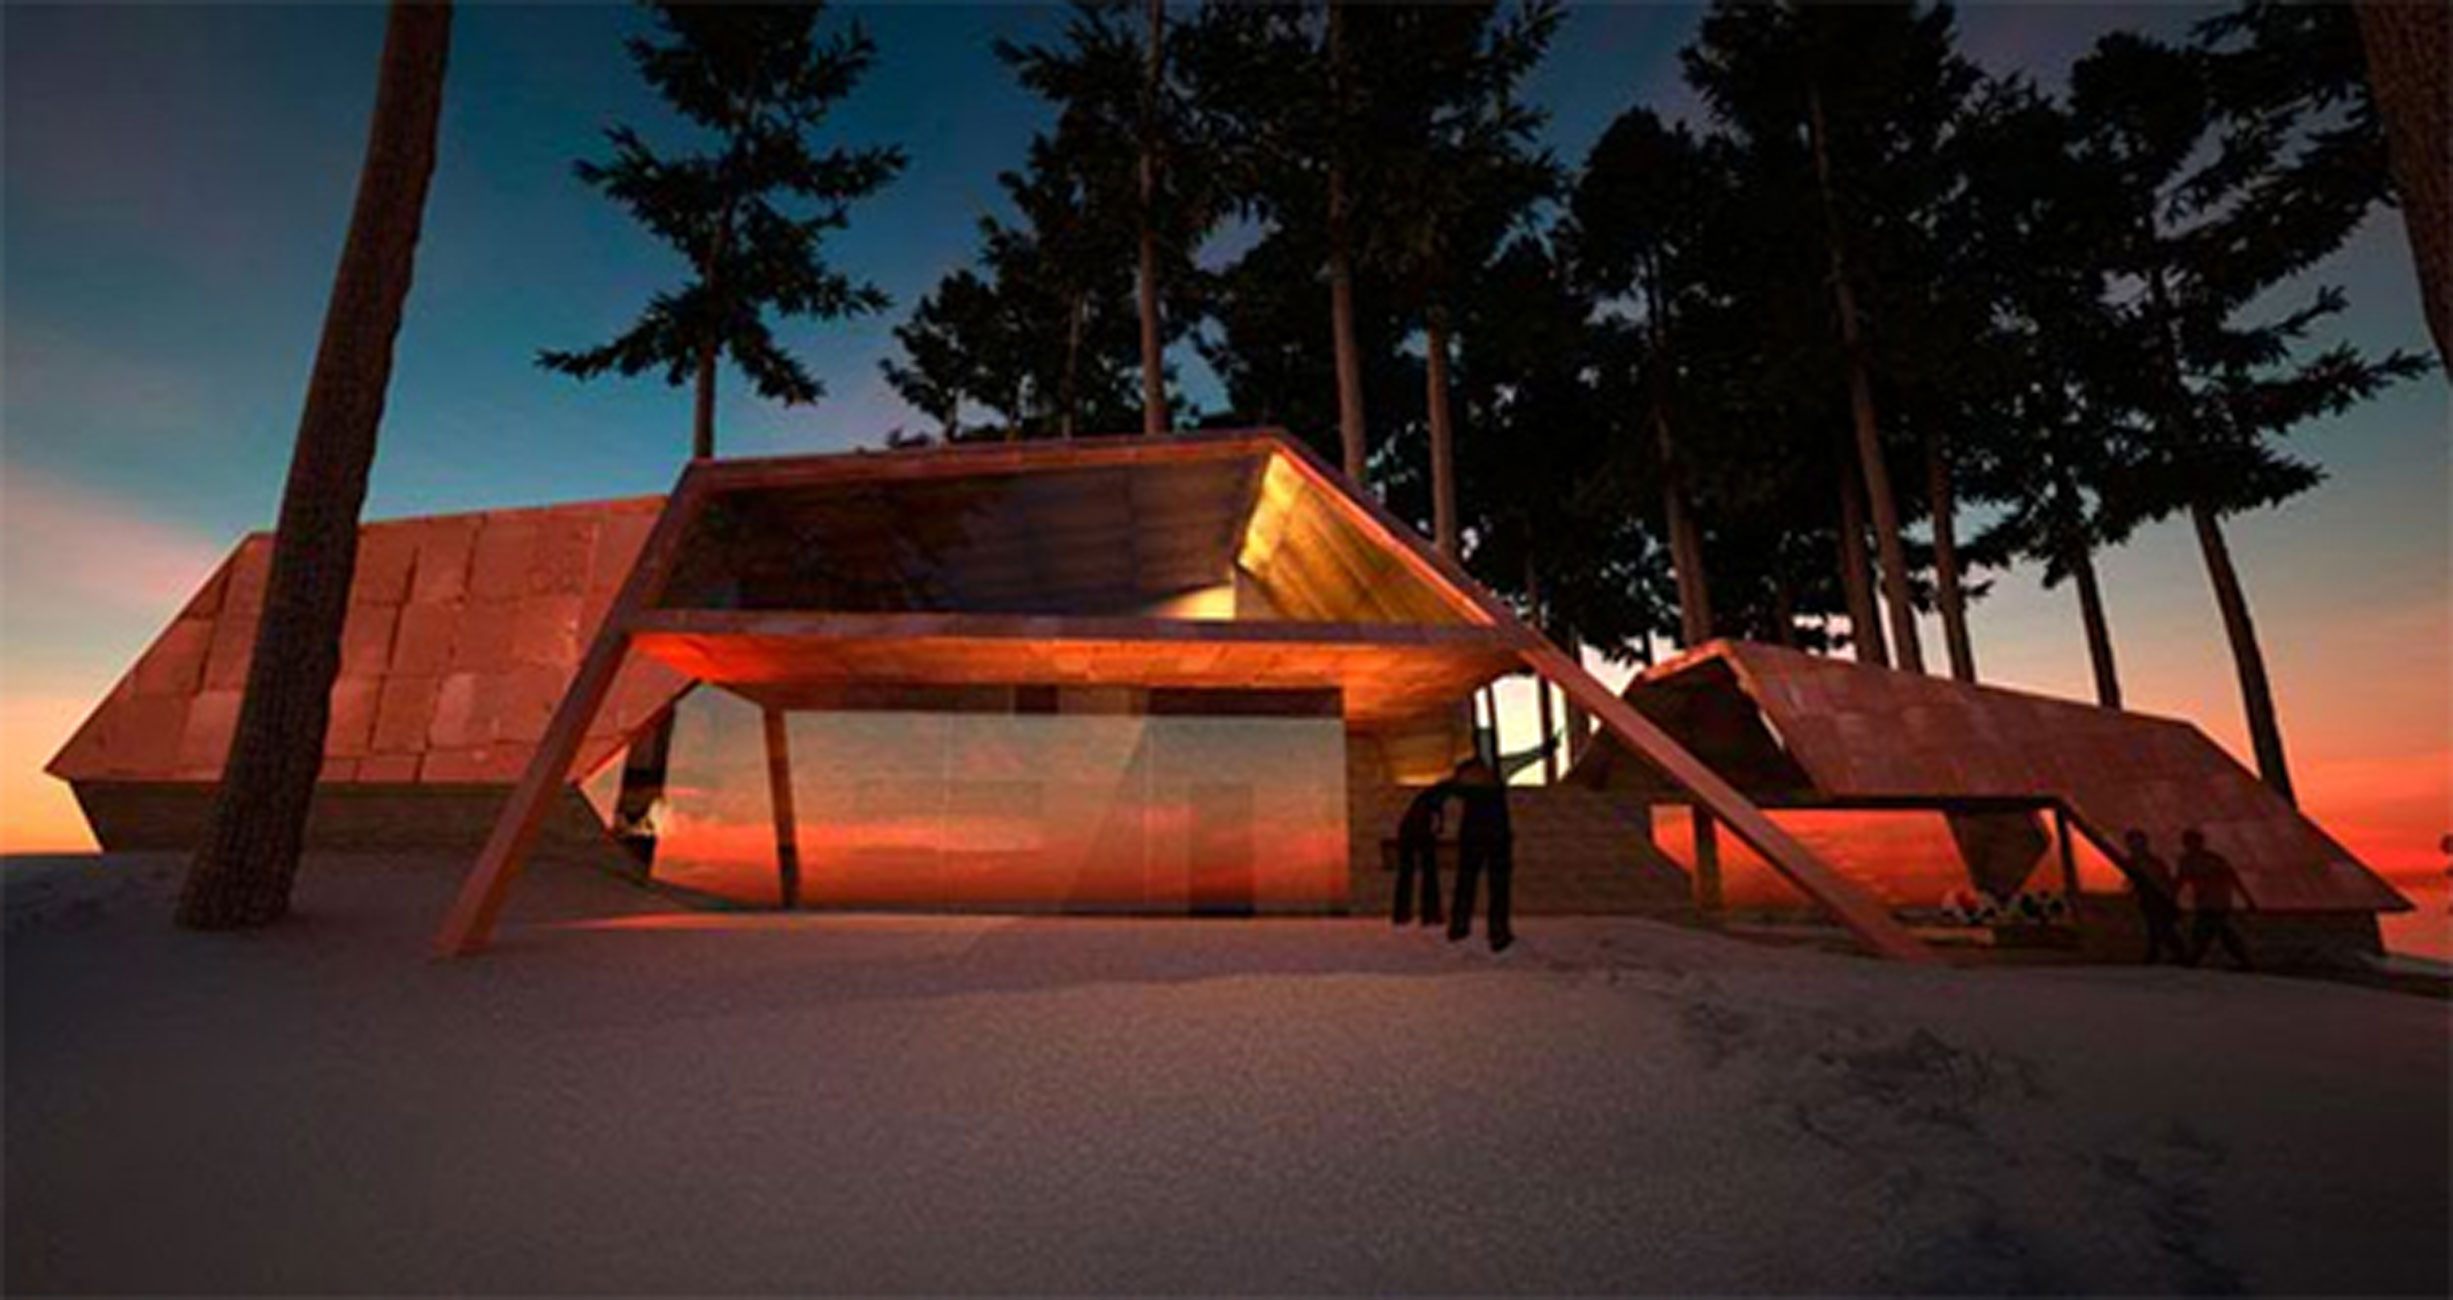 Sweden Houses Design Retro Futuristic Retreat House Design In Sweden Facade